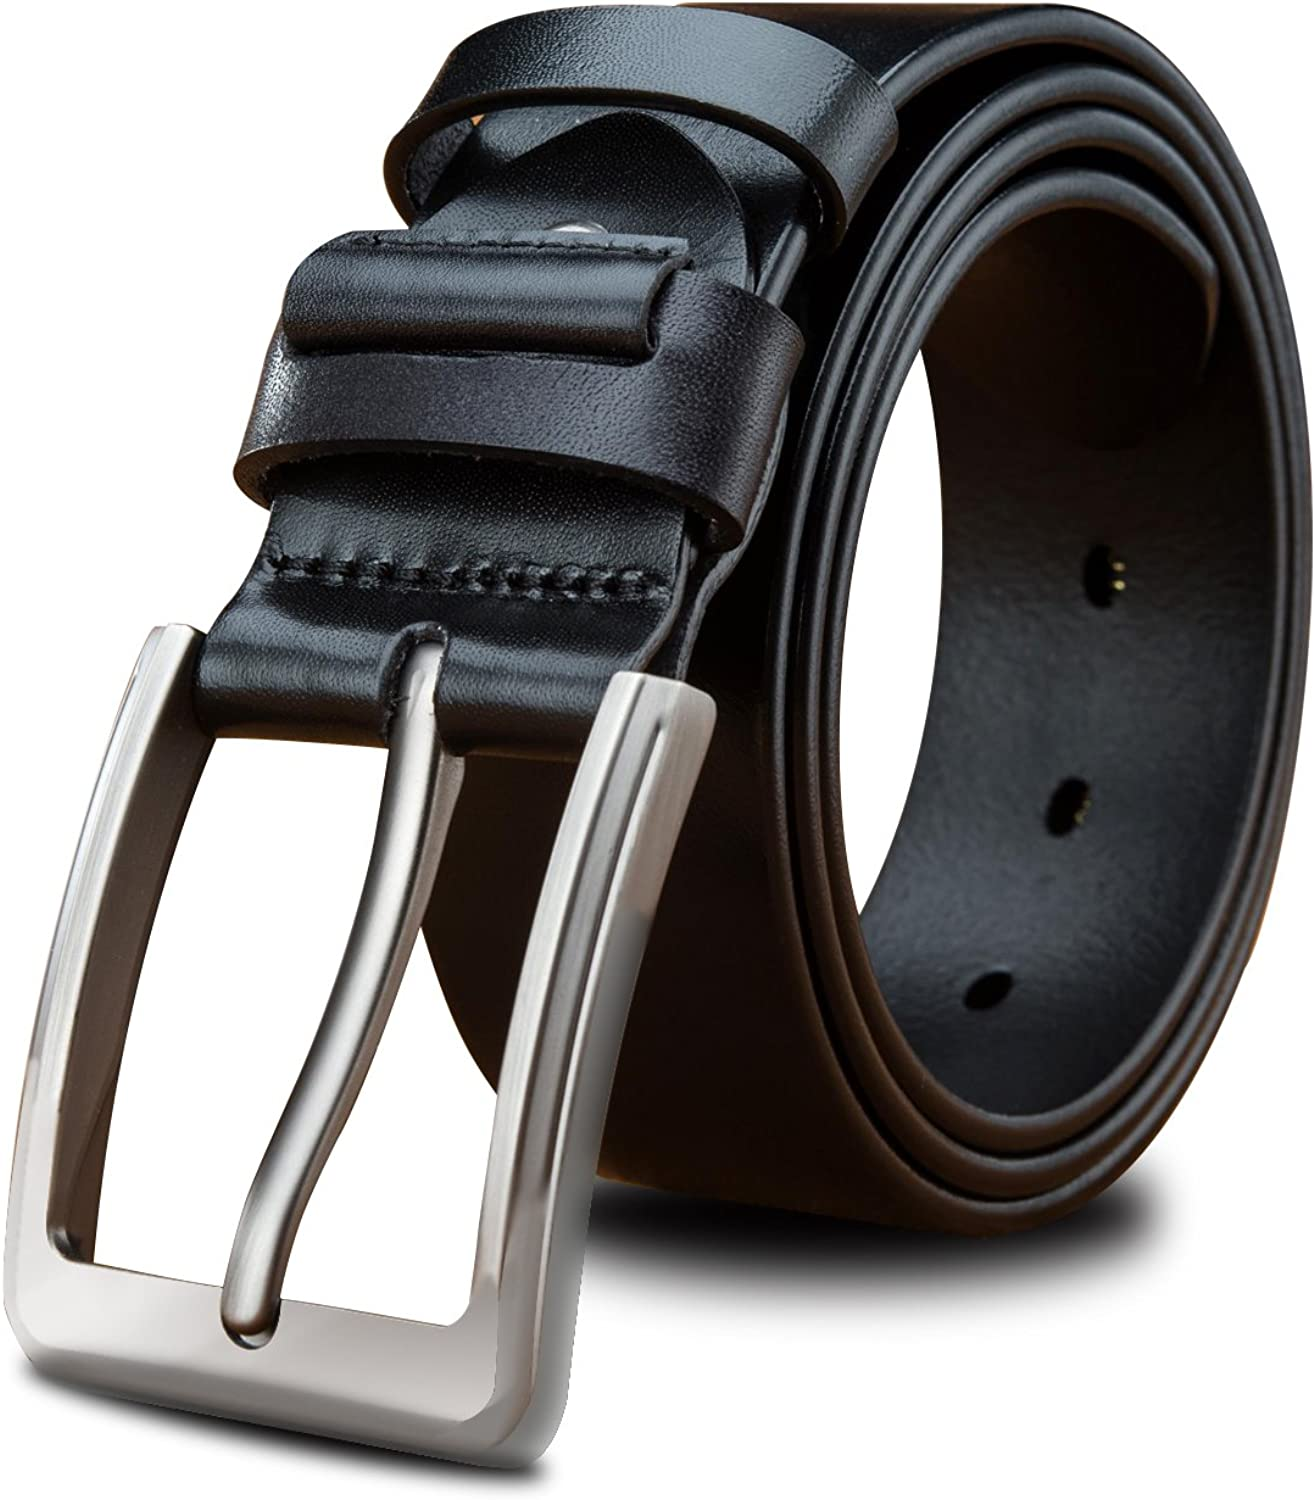 LUCIANO Italy Cowhide Genuine Leather Black & Brown Belt Men's Dress Belts for Gift